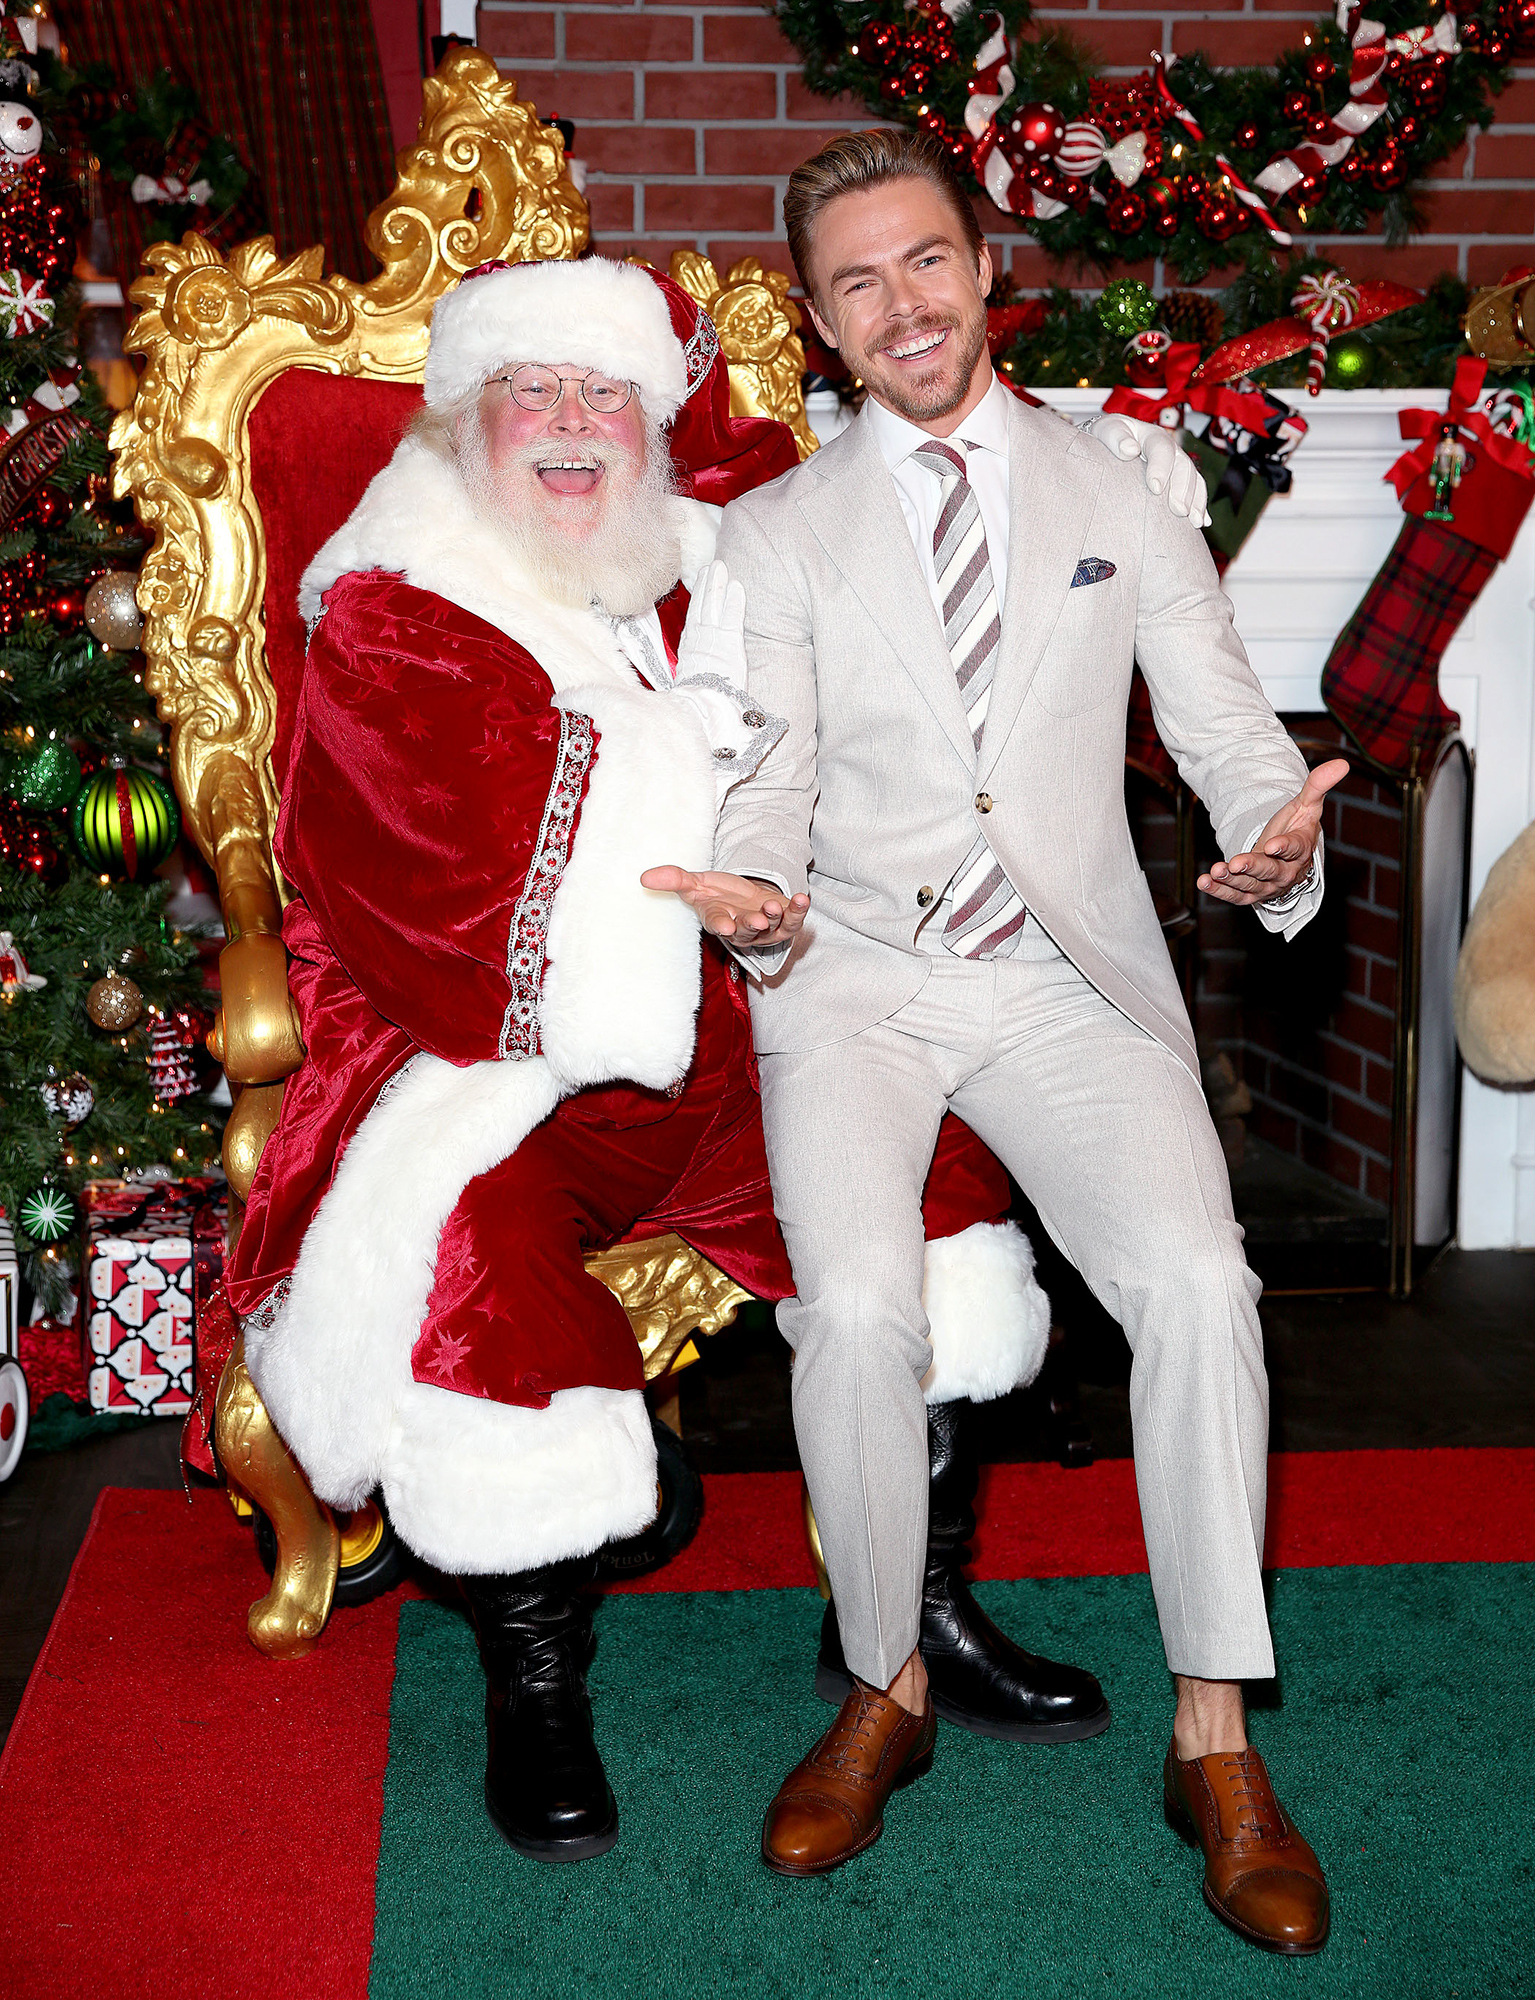 **EXCLUSIVE**  Photo Credit: MOVI Inc.  Date: November 16th 2017Derek Hough takes a seat on Santa's knee before hosting The Americana At Brand's Christmas Tree lighting show in Glendale,CA.